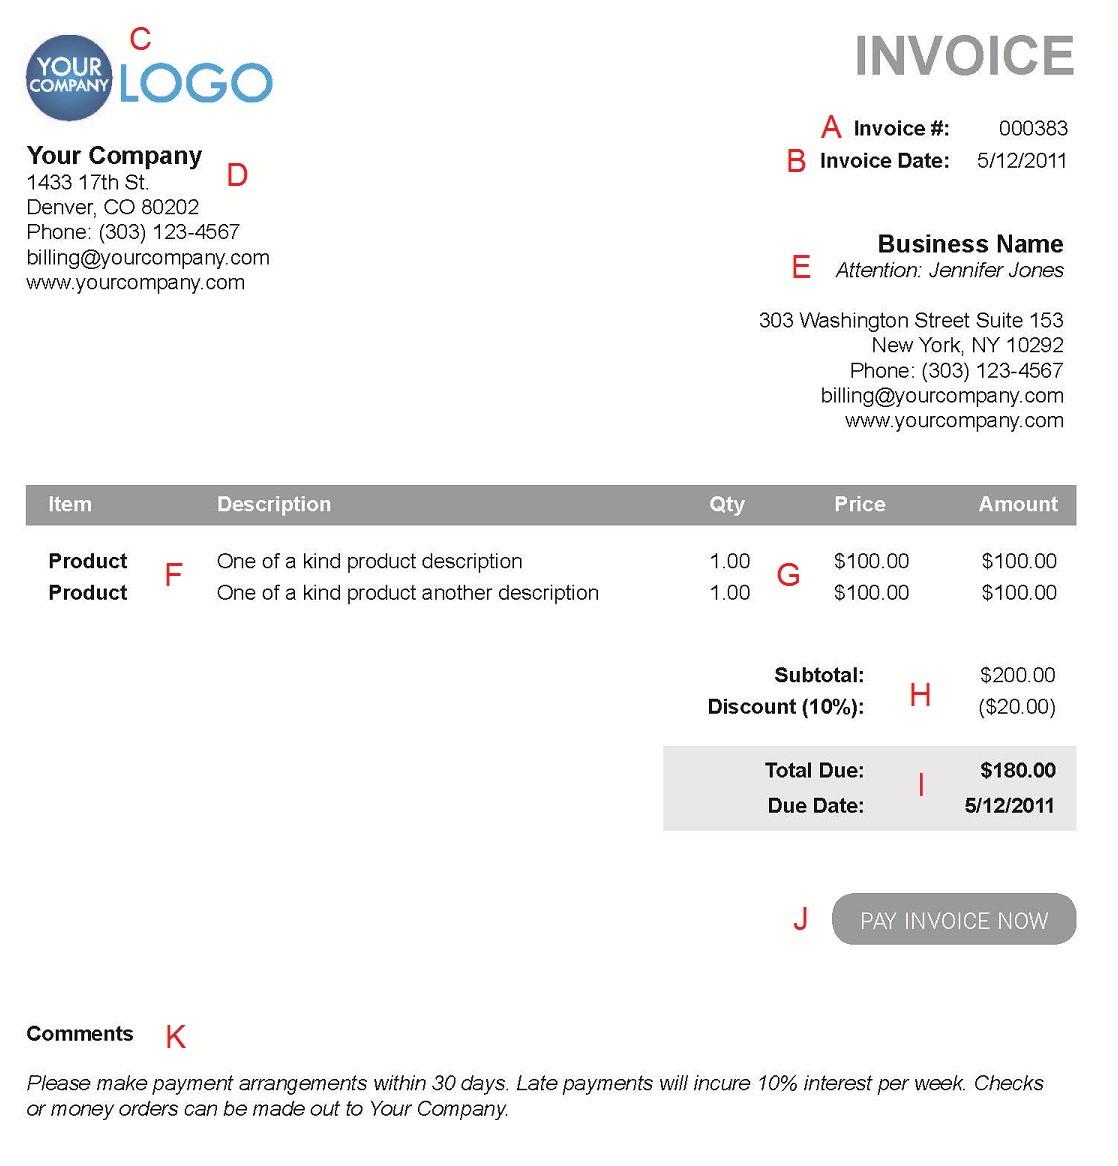 Bringjacobolivierhomeus  Ravishing The  Different Sections Of An Electronic Payment Invoice With Entrancing A  With Captivating Honda Invoice Also Access Invoice Database In Addition Freelance Invoice Templates And Print Free Invoice As Well As Invoices Program Additionally Music Invoice From Paysimplecom With Bringjacobolivierhomeus  Entrancing The  Different Sections Of An Electronic Payment Invoice With Captivating A  And Ravishing Honda Invoice Also Access Invoice Database In Addition Freelance Invoice Templates From Paysimplecom